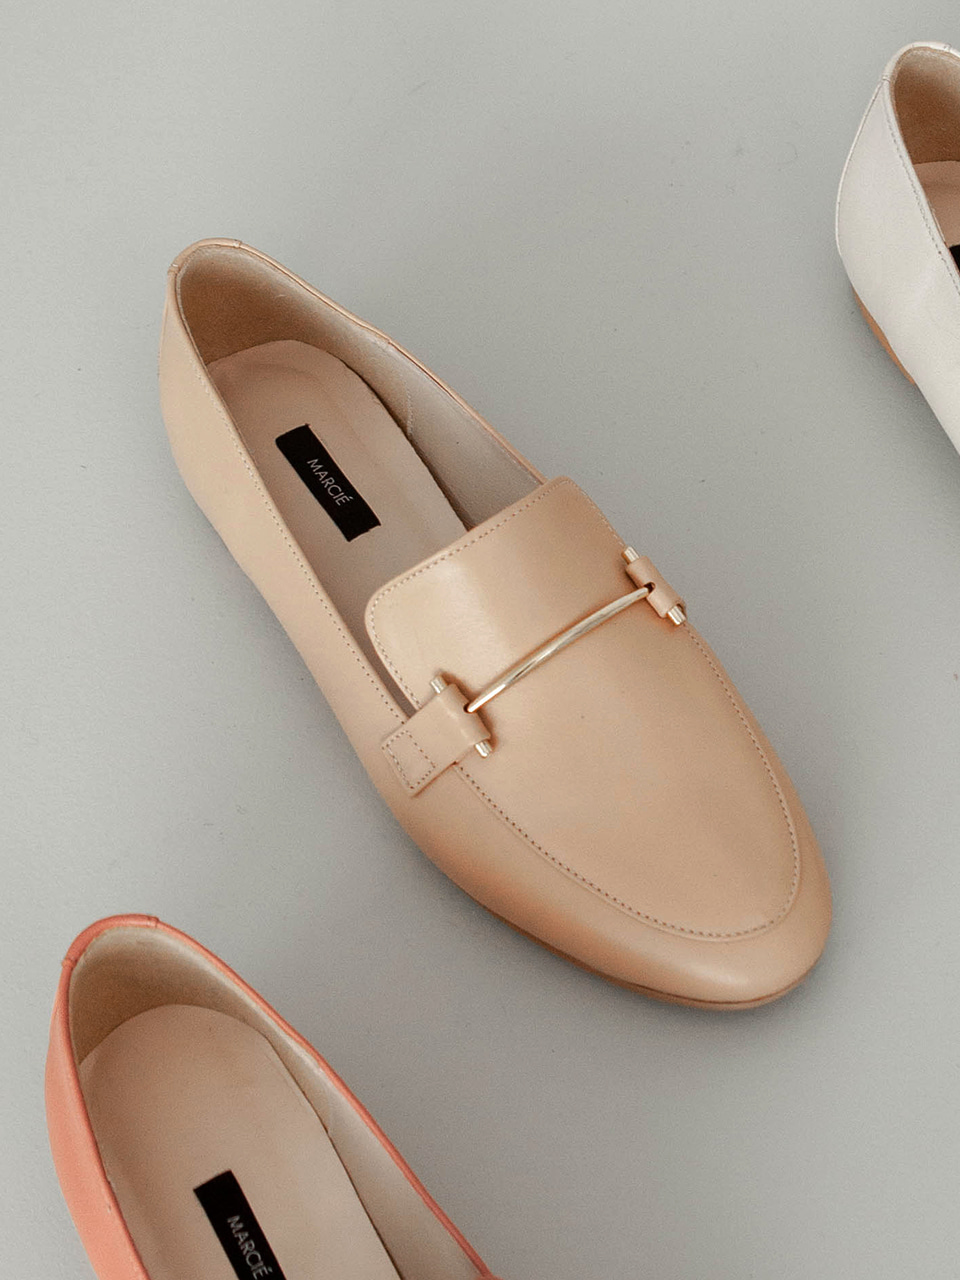 Mrc052 Gold Pin Loafer (Nude Beige)